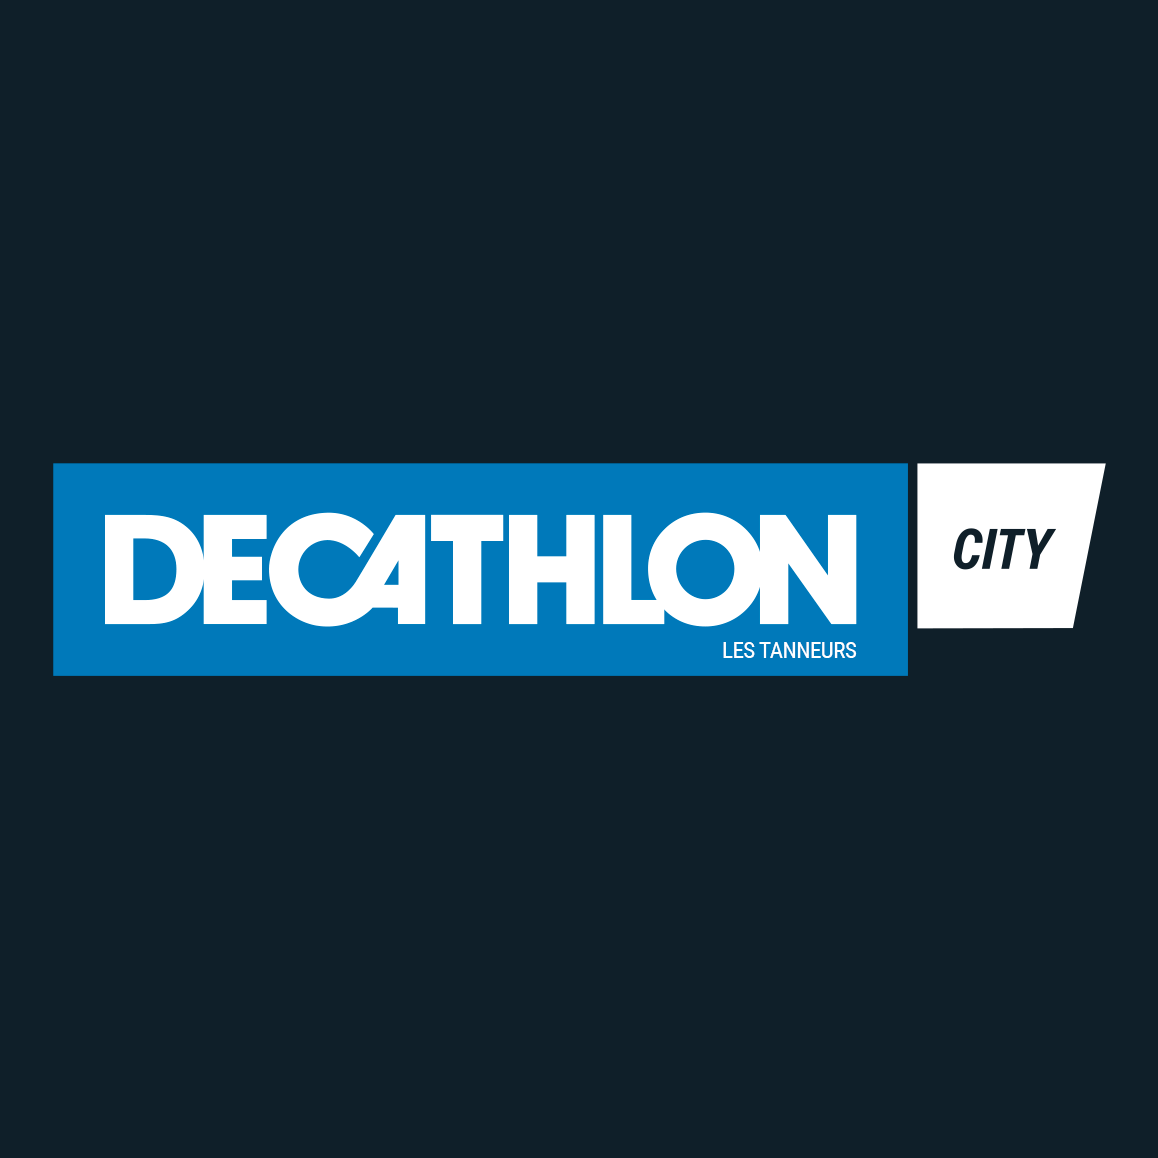 Decathlon City Lille